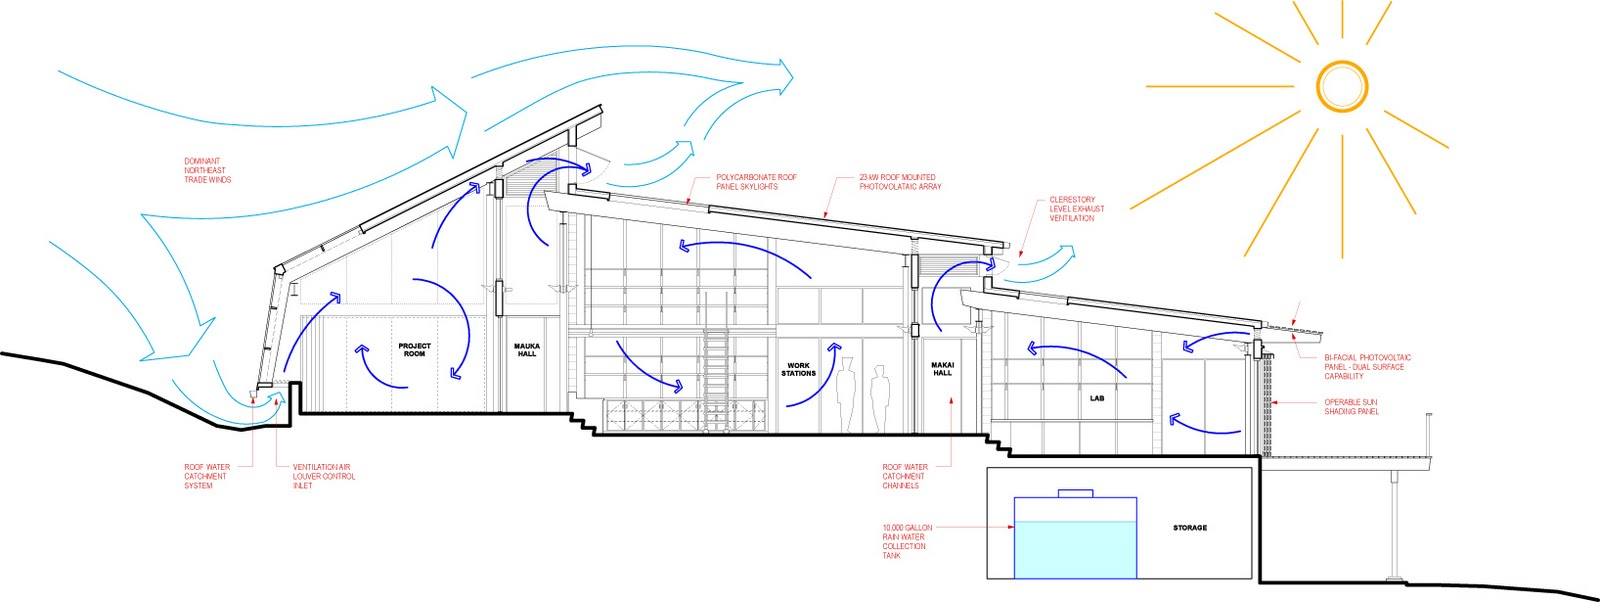 the human brain in photographs and diagrams porsche 997 pcm wiring diagram hawaii preparatory academy energy laboratory : by flansburgh architects ~ housevariety